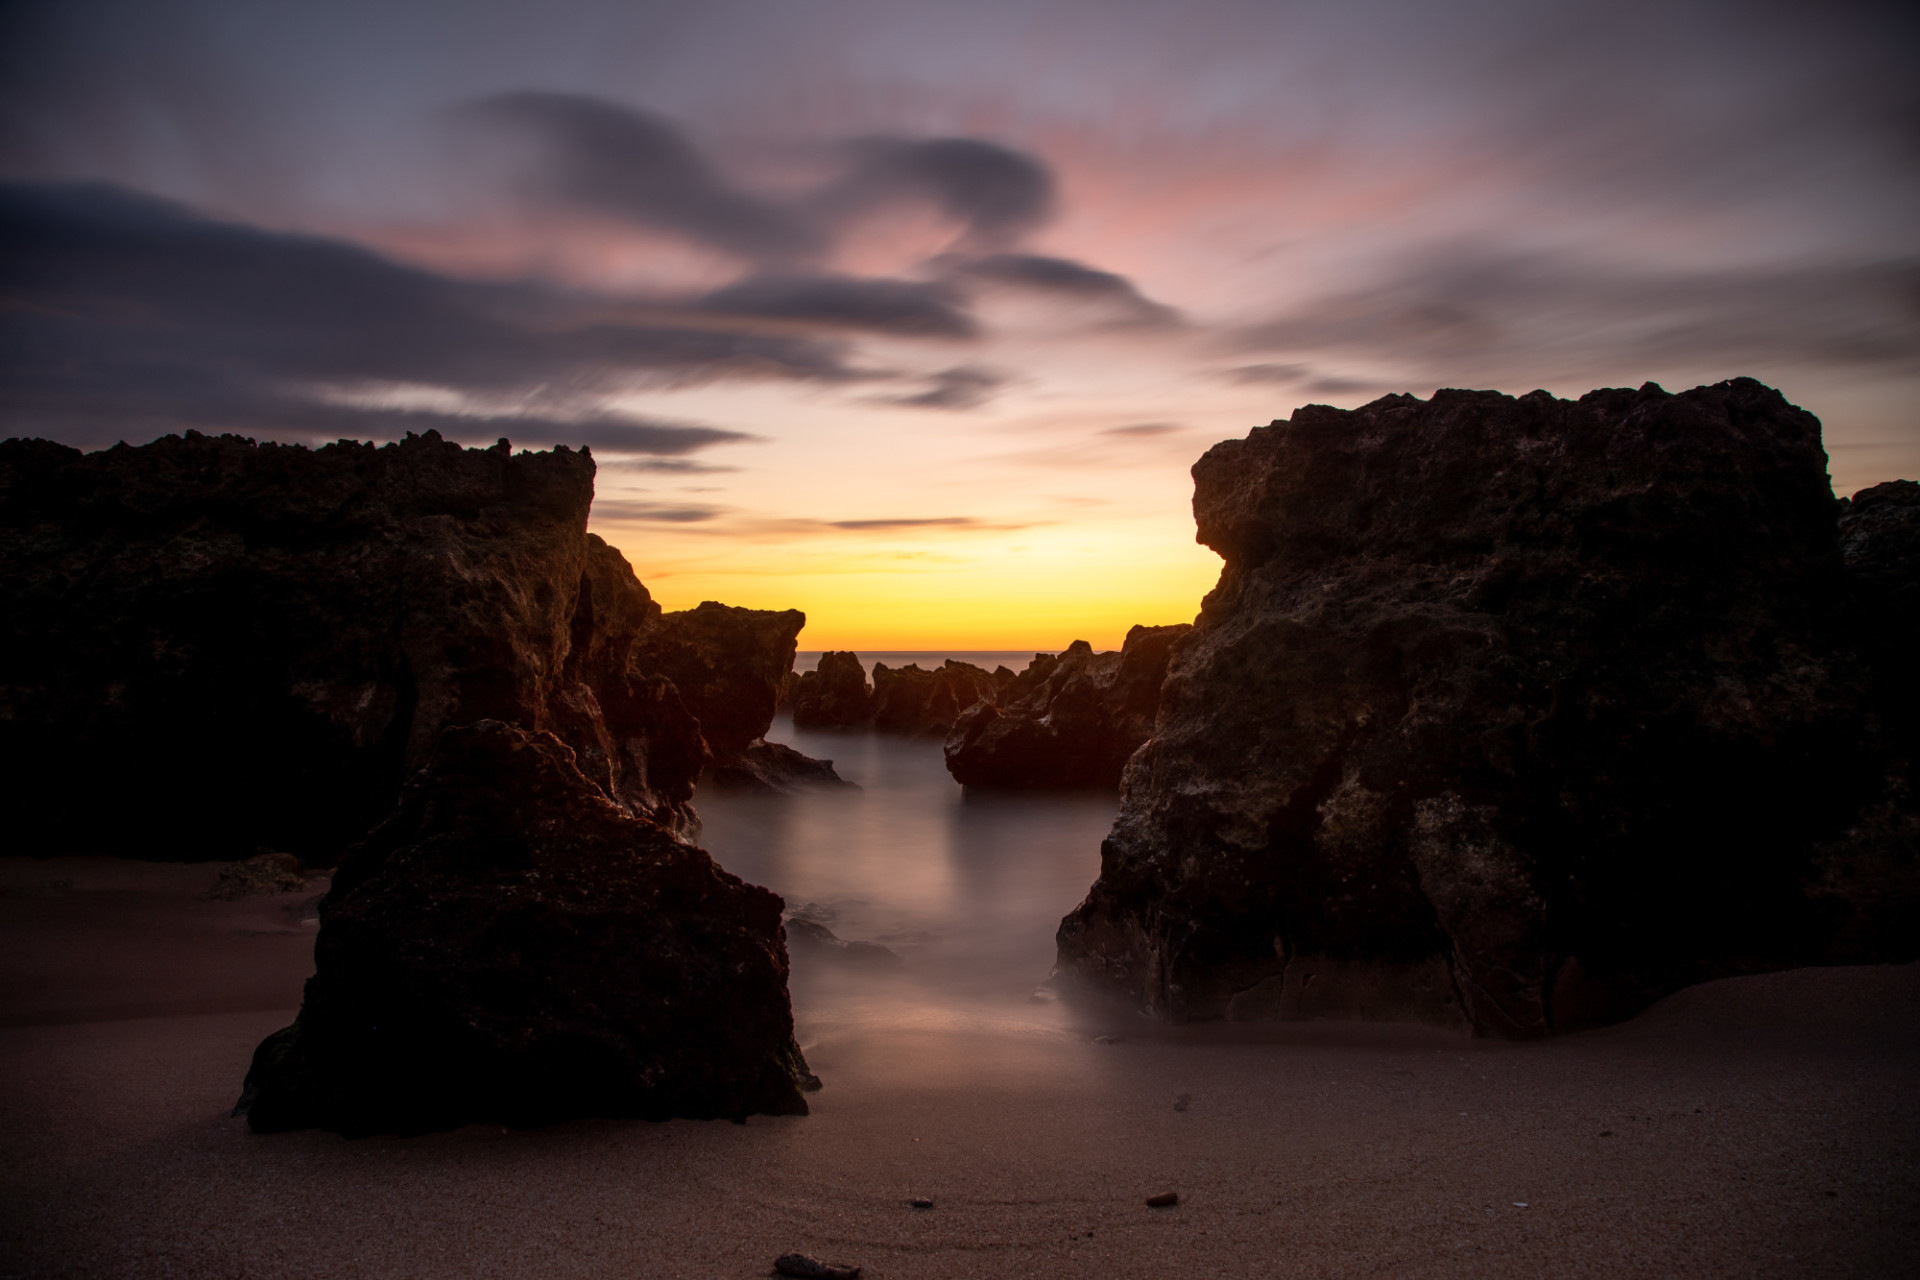 Wonderful sunset on the cliff-rich beach of Portugal Seascape